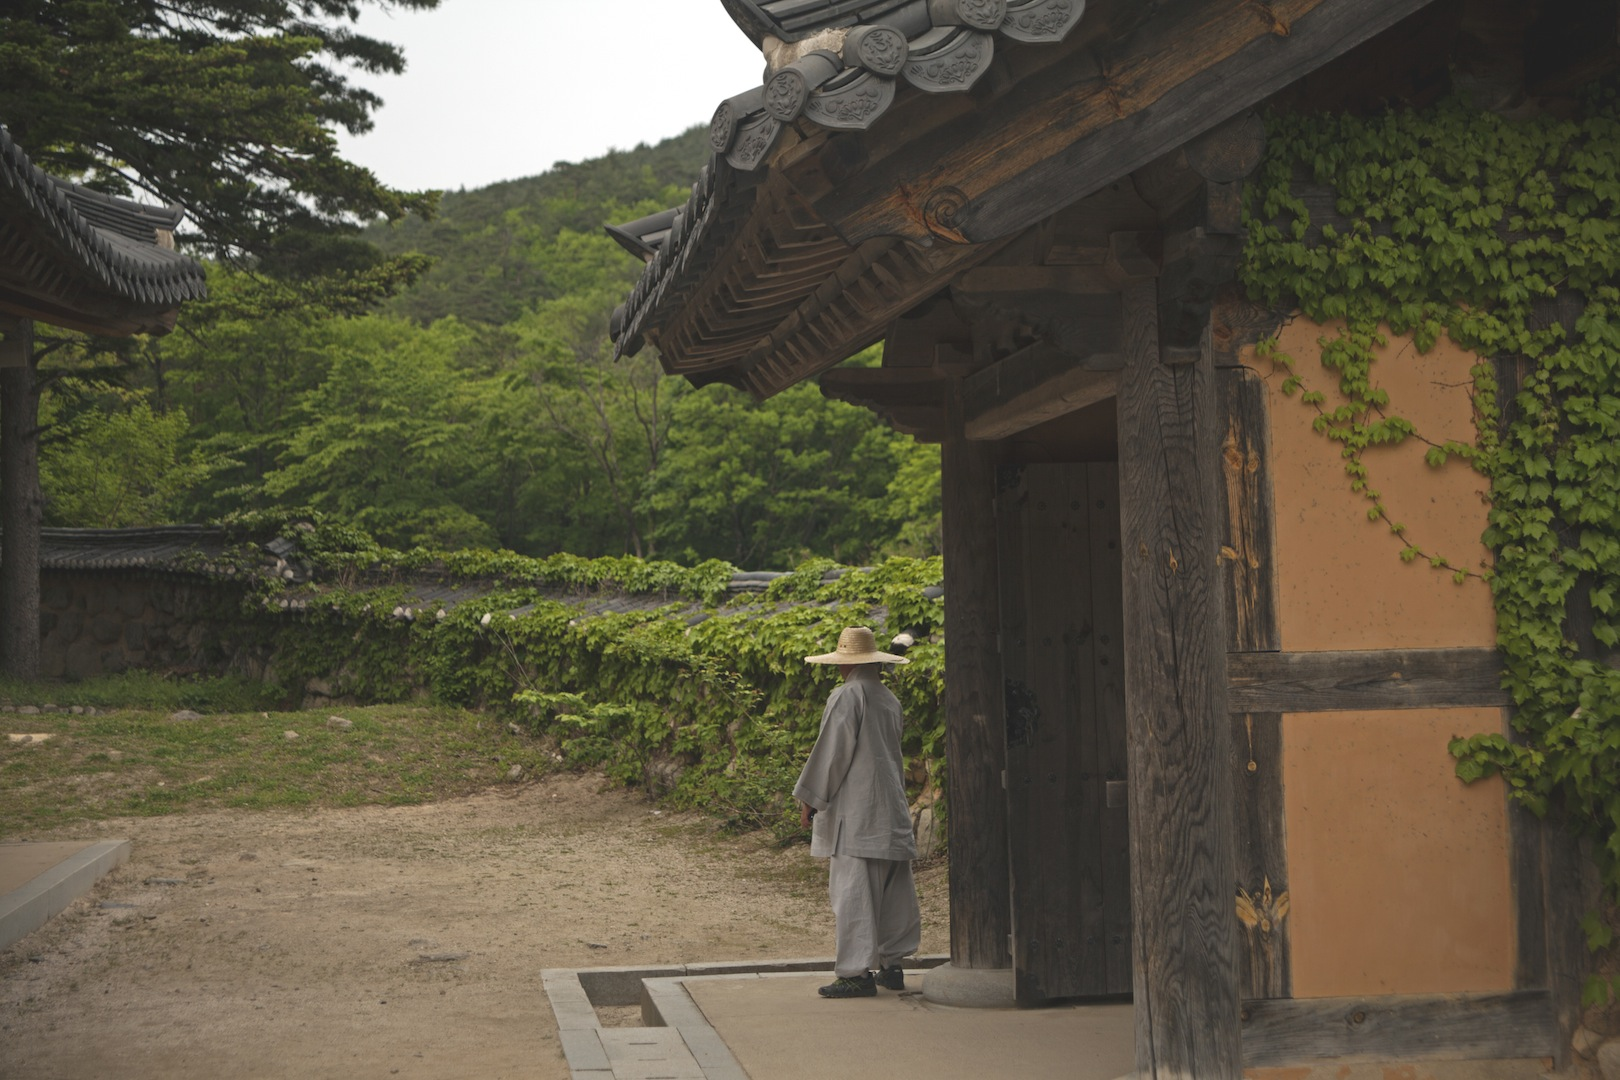 Monk in Seoraksan